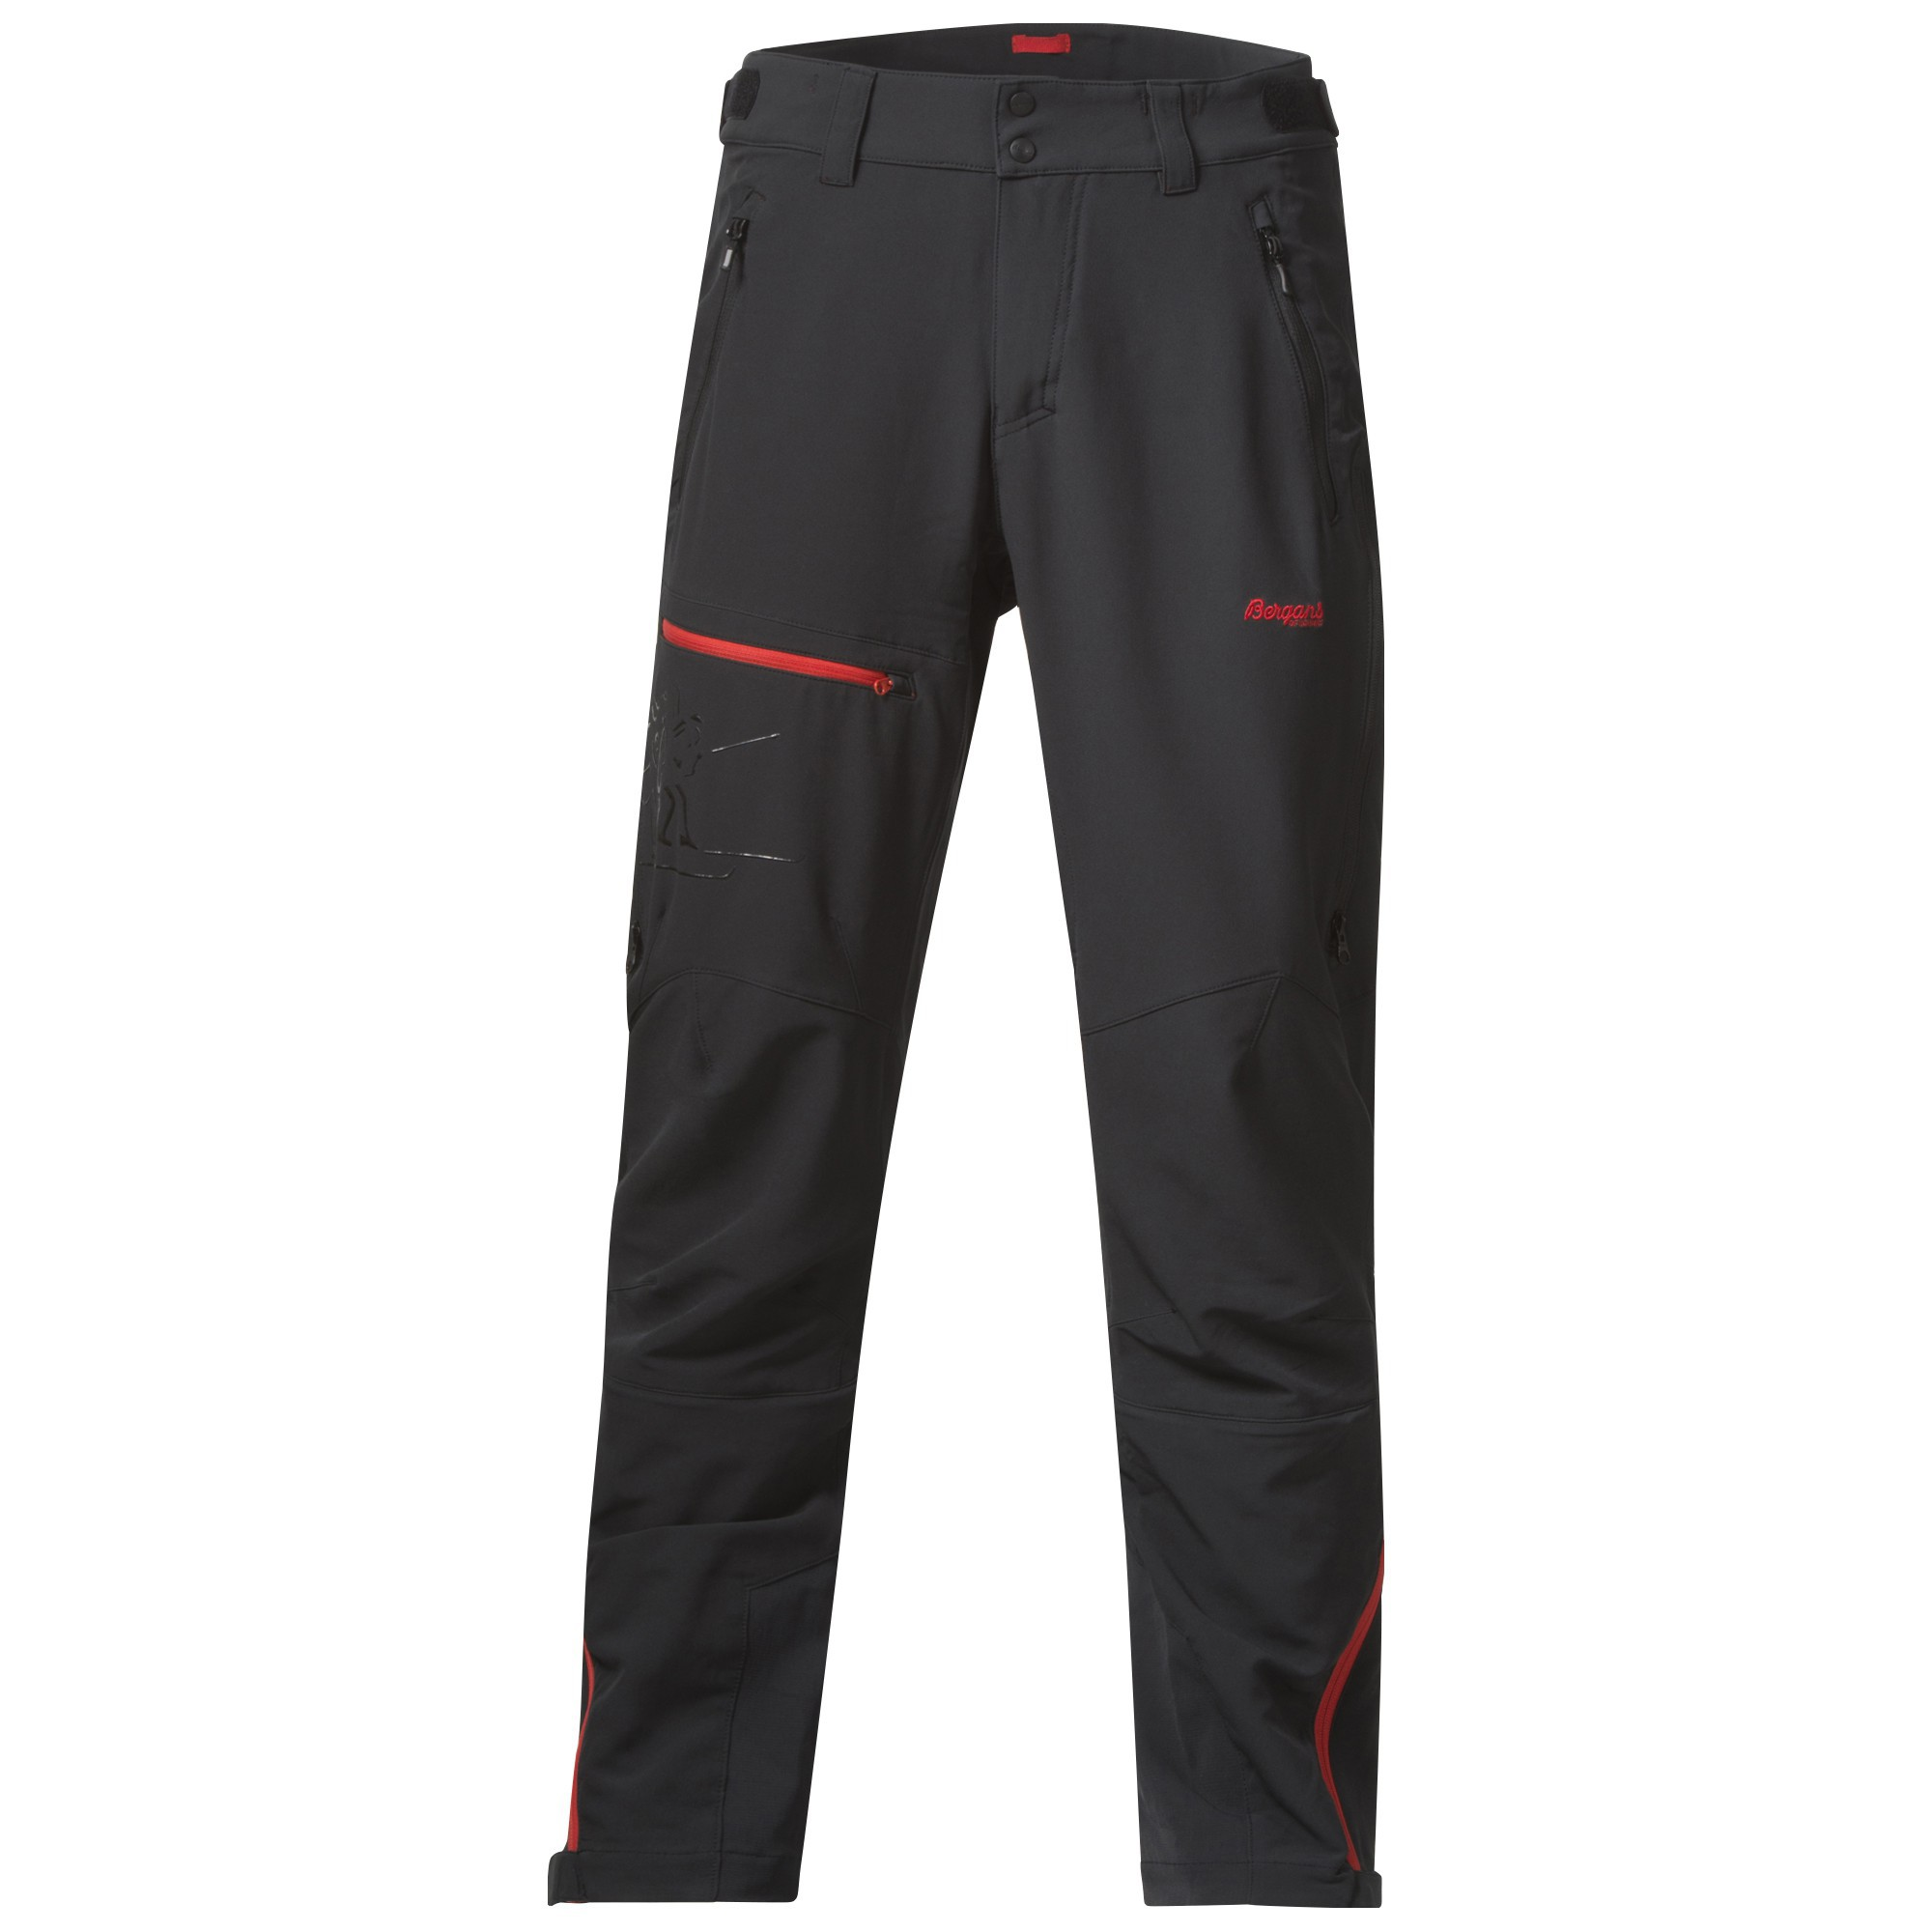 Bergans of Norway Osatind Ski Pant